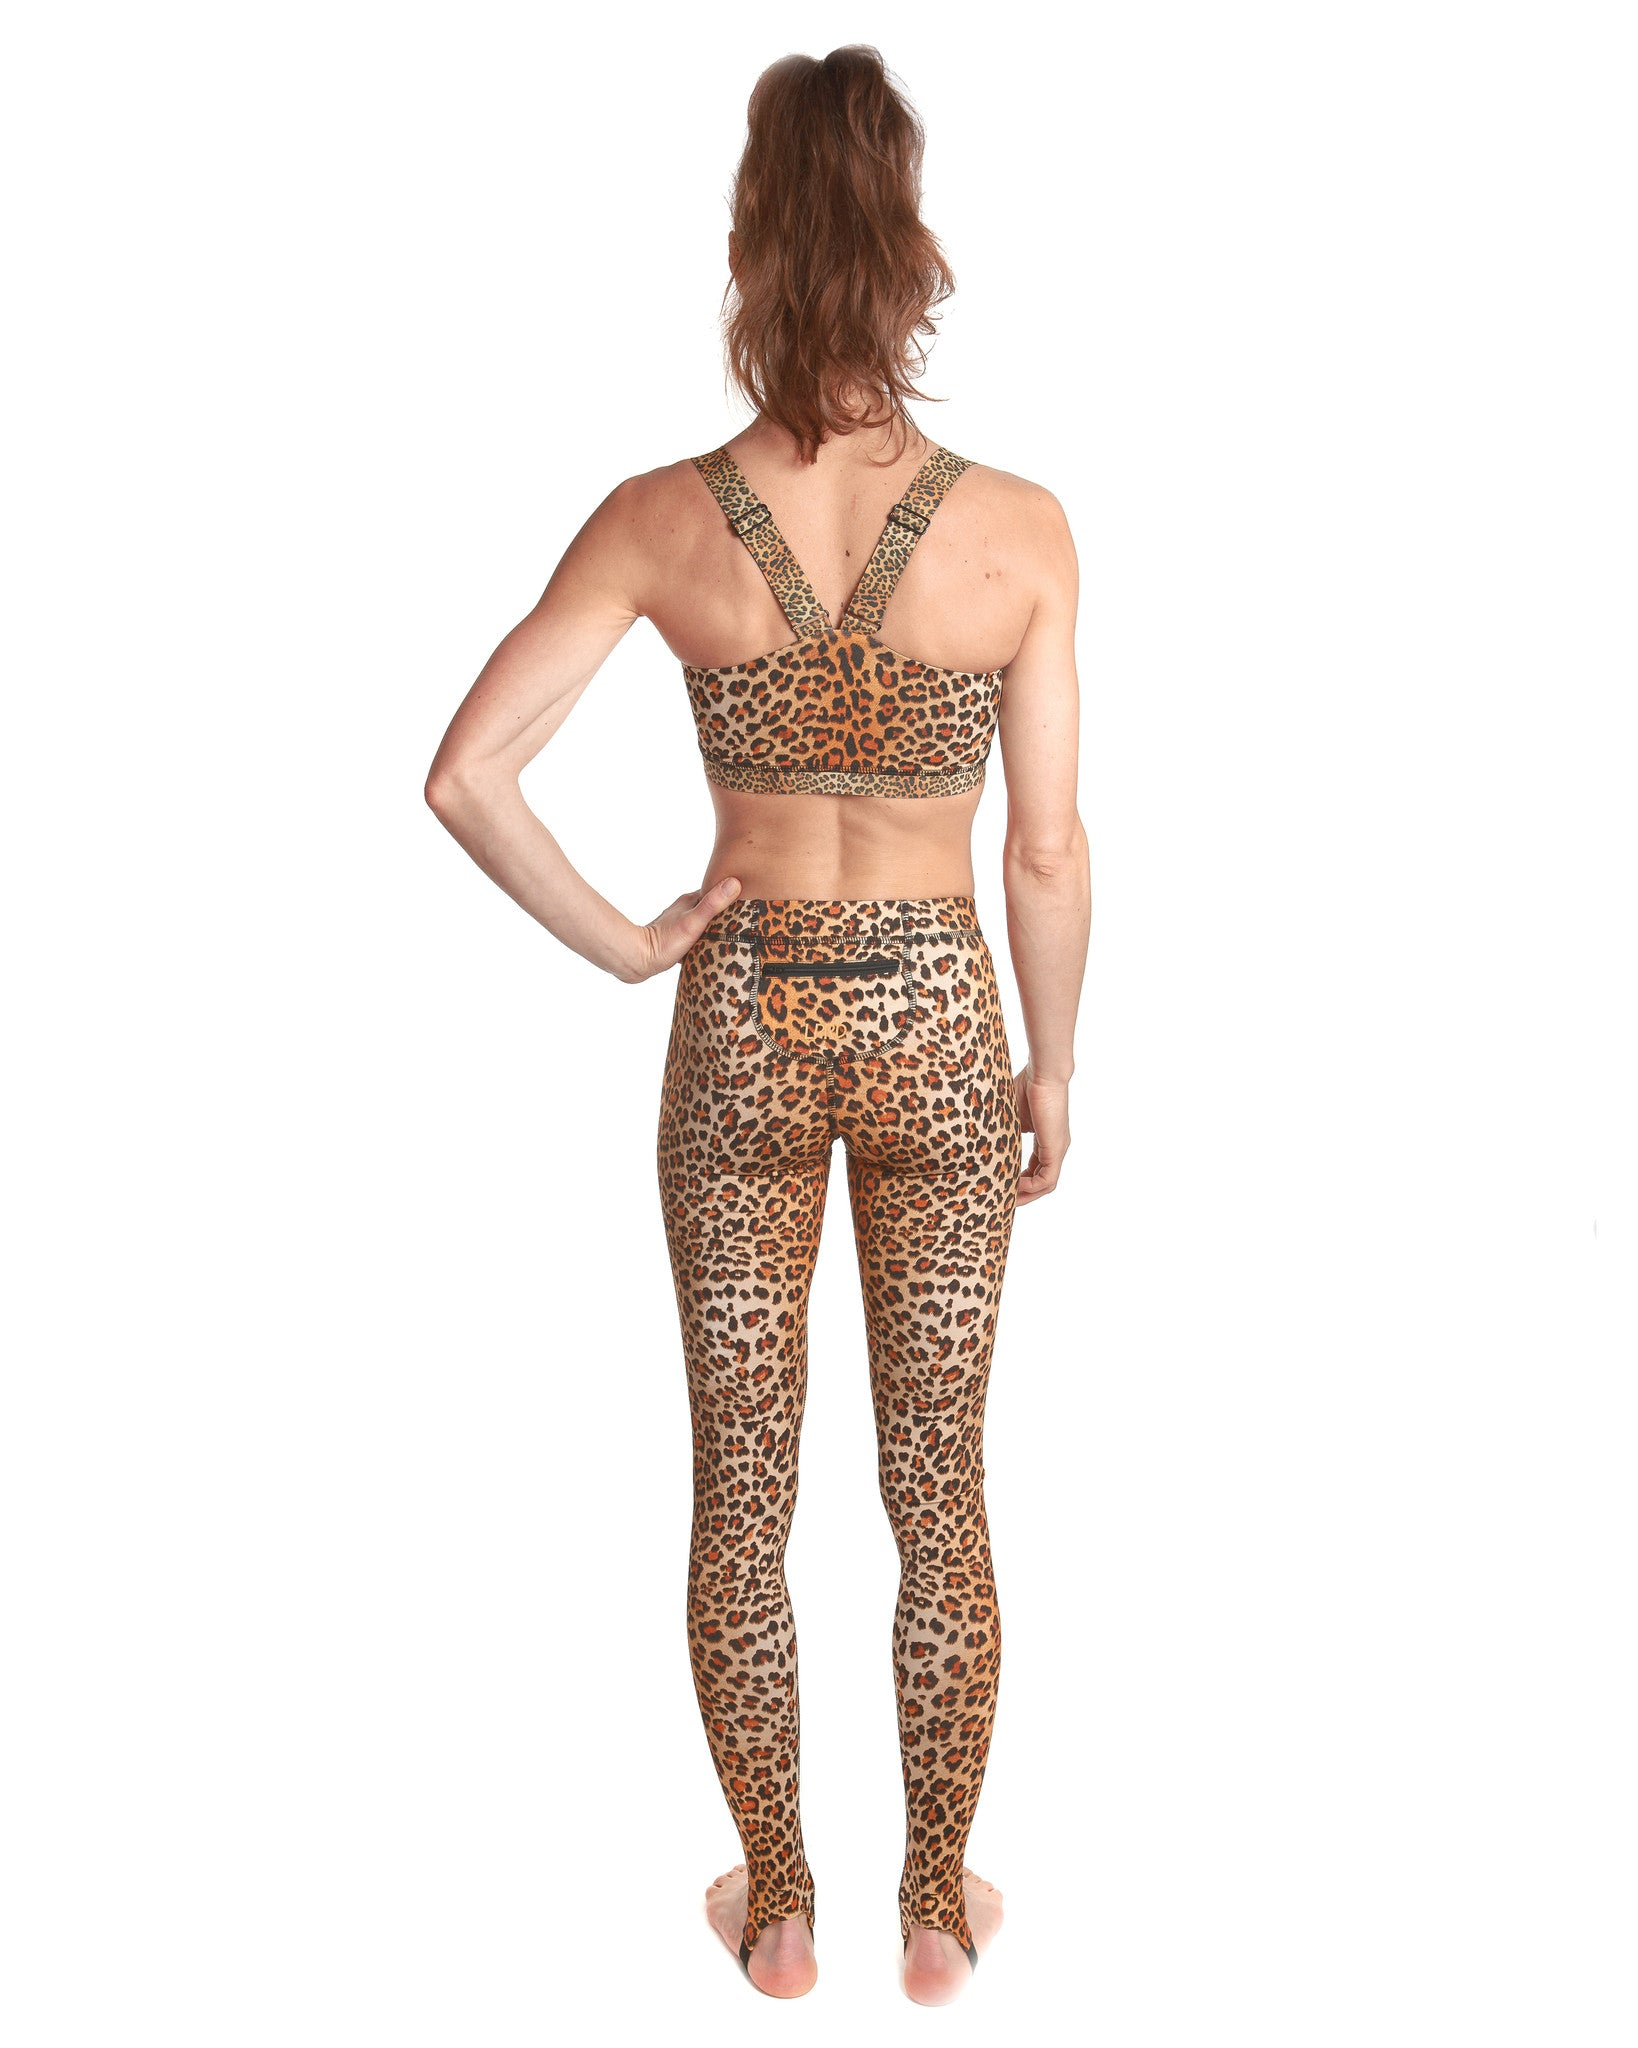 LPRD Signature Leopard Print Leggings | Back view with zip pocket